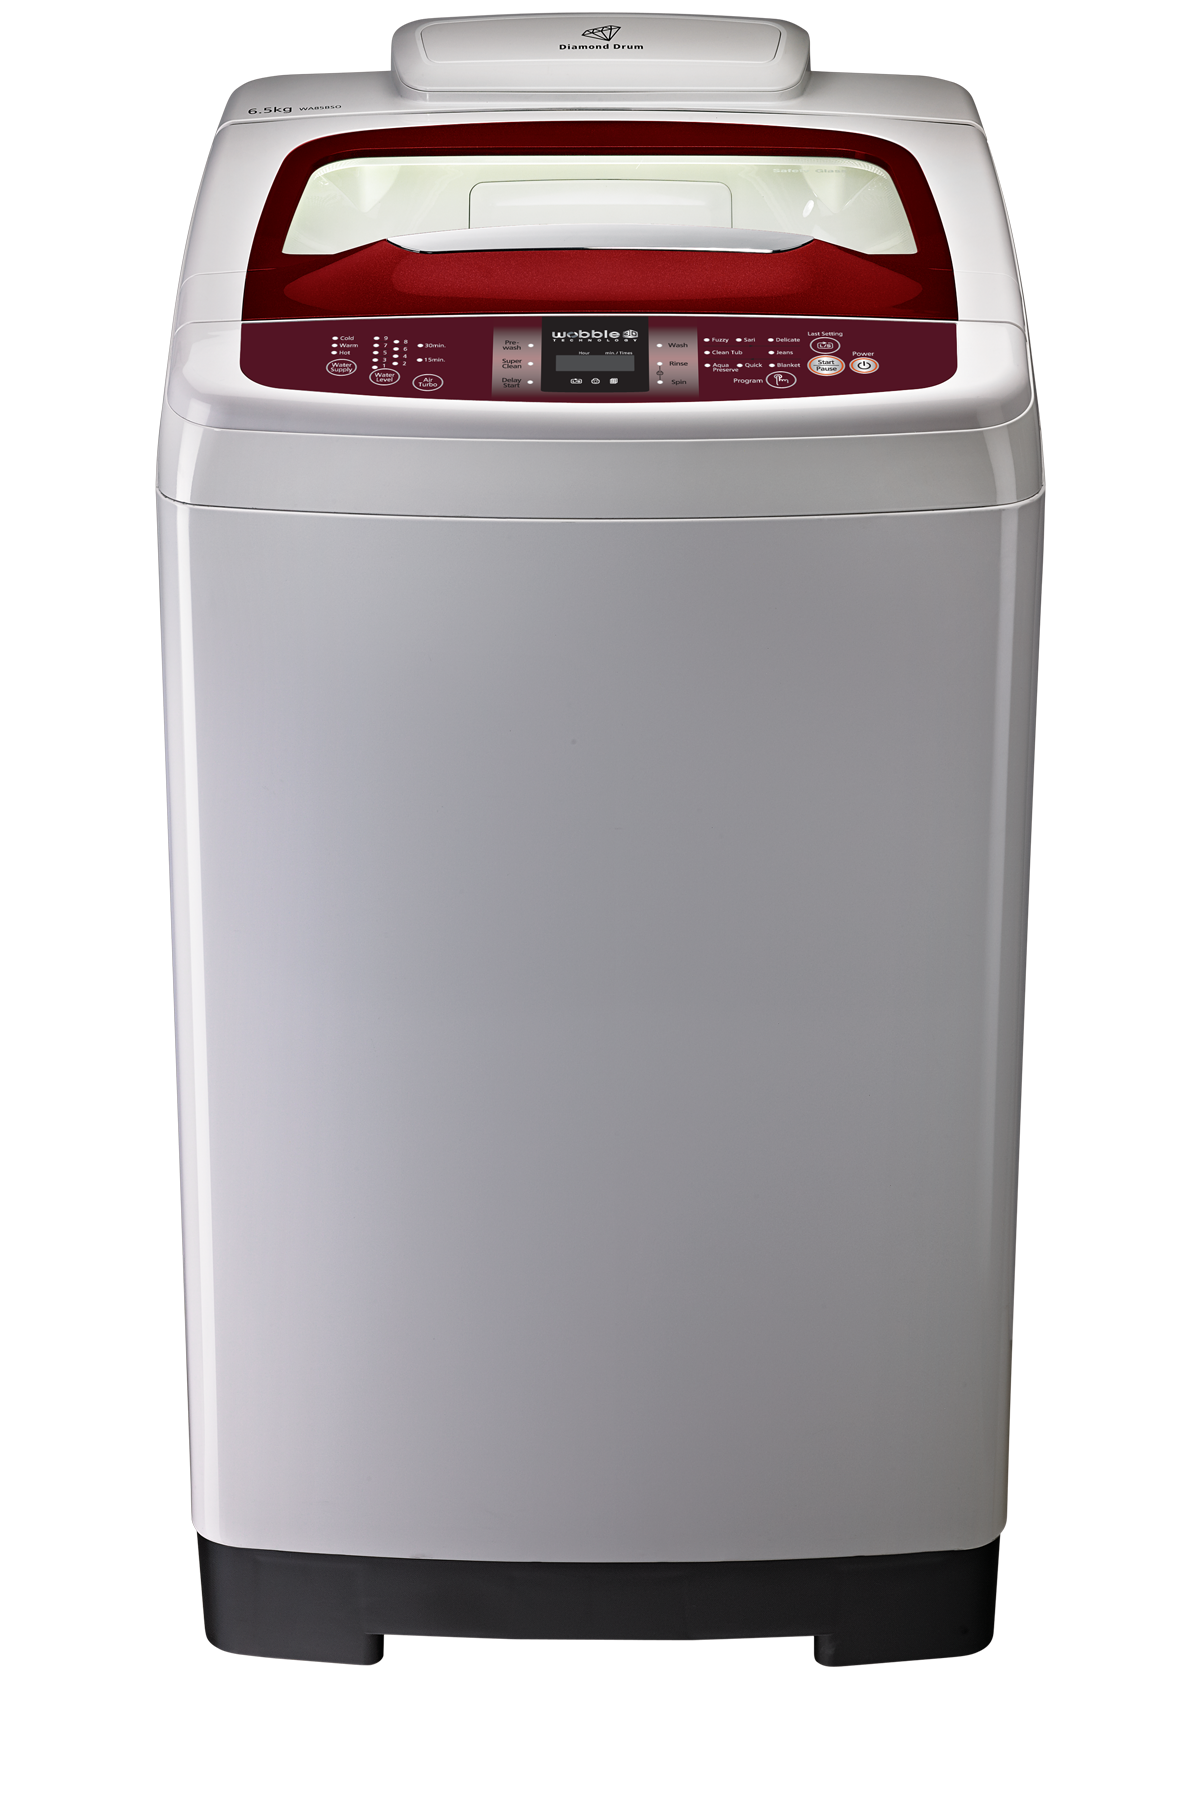 samsung top loader washing machine manual